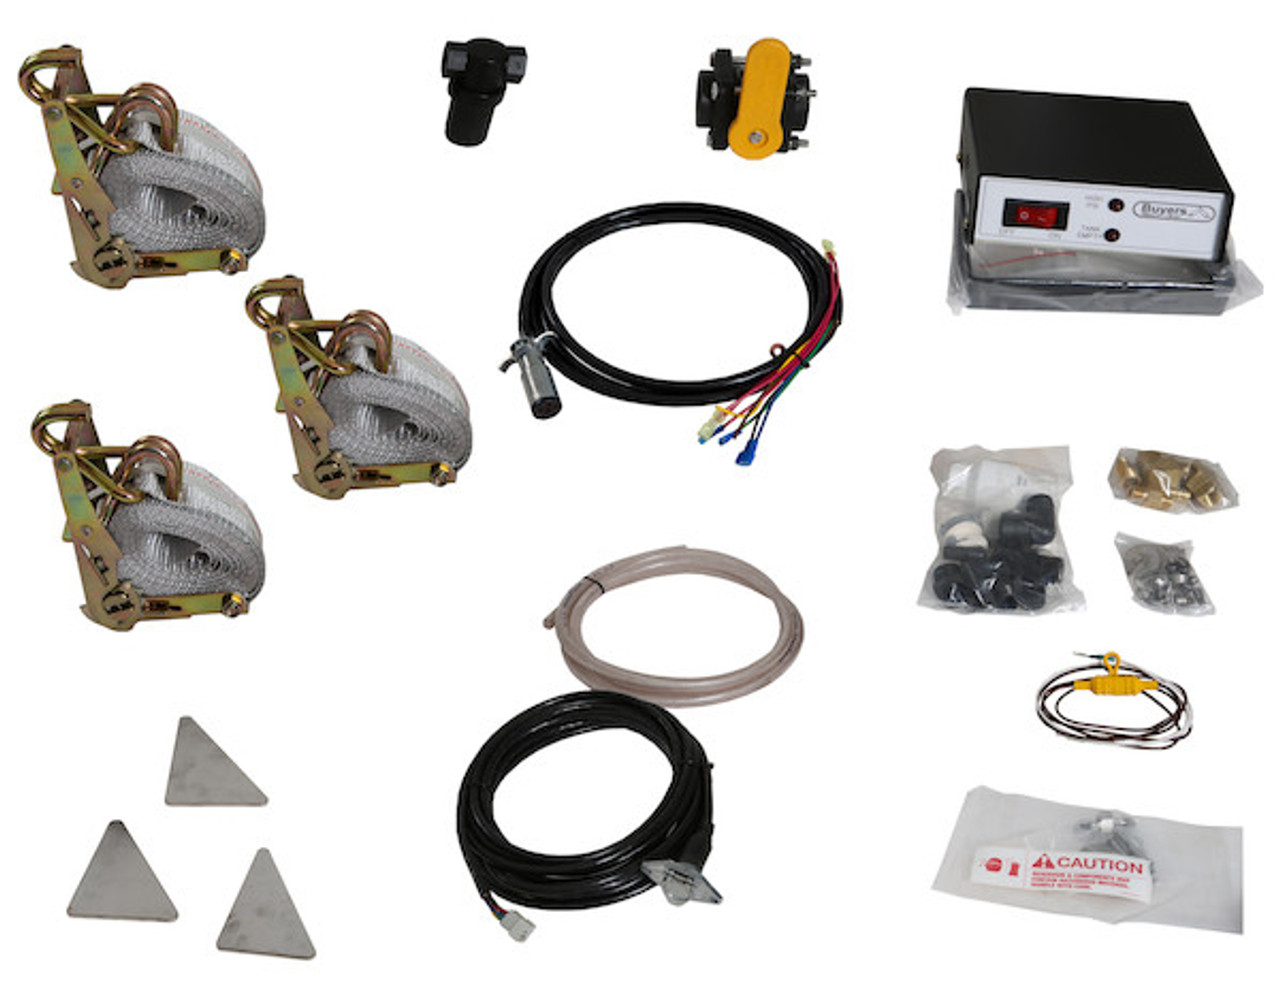 LS4 Buyers SaltDogg 12 VDC Pre-Wet Kit With One 105-Gallon Poly V-Box Mount Reservoir Picture # 1